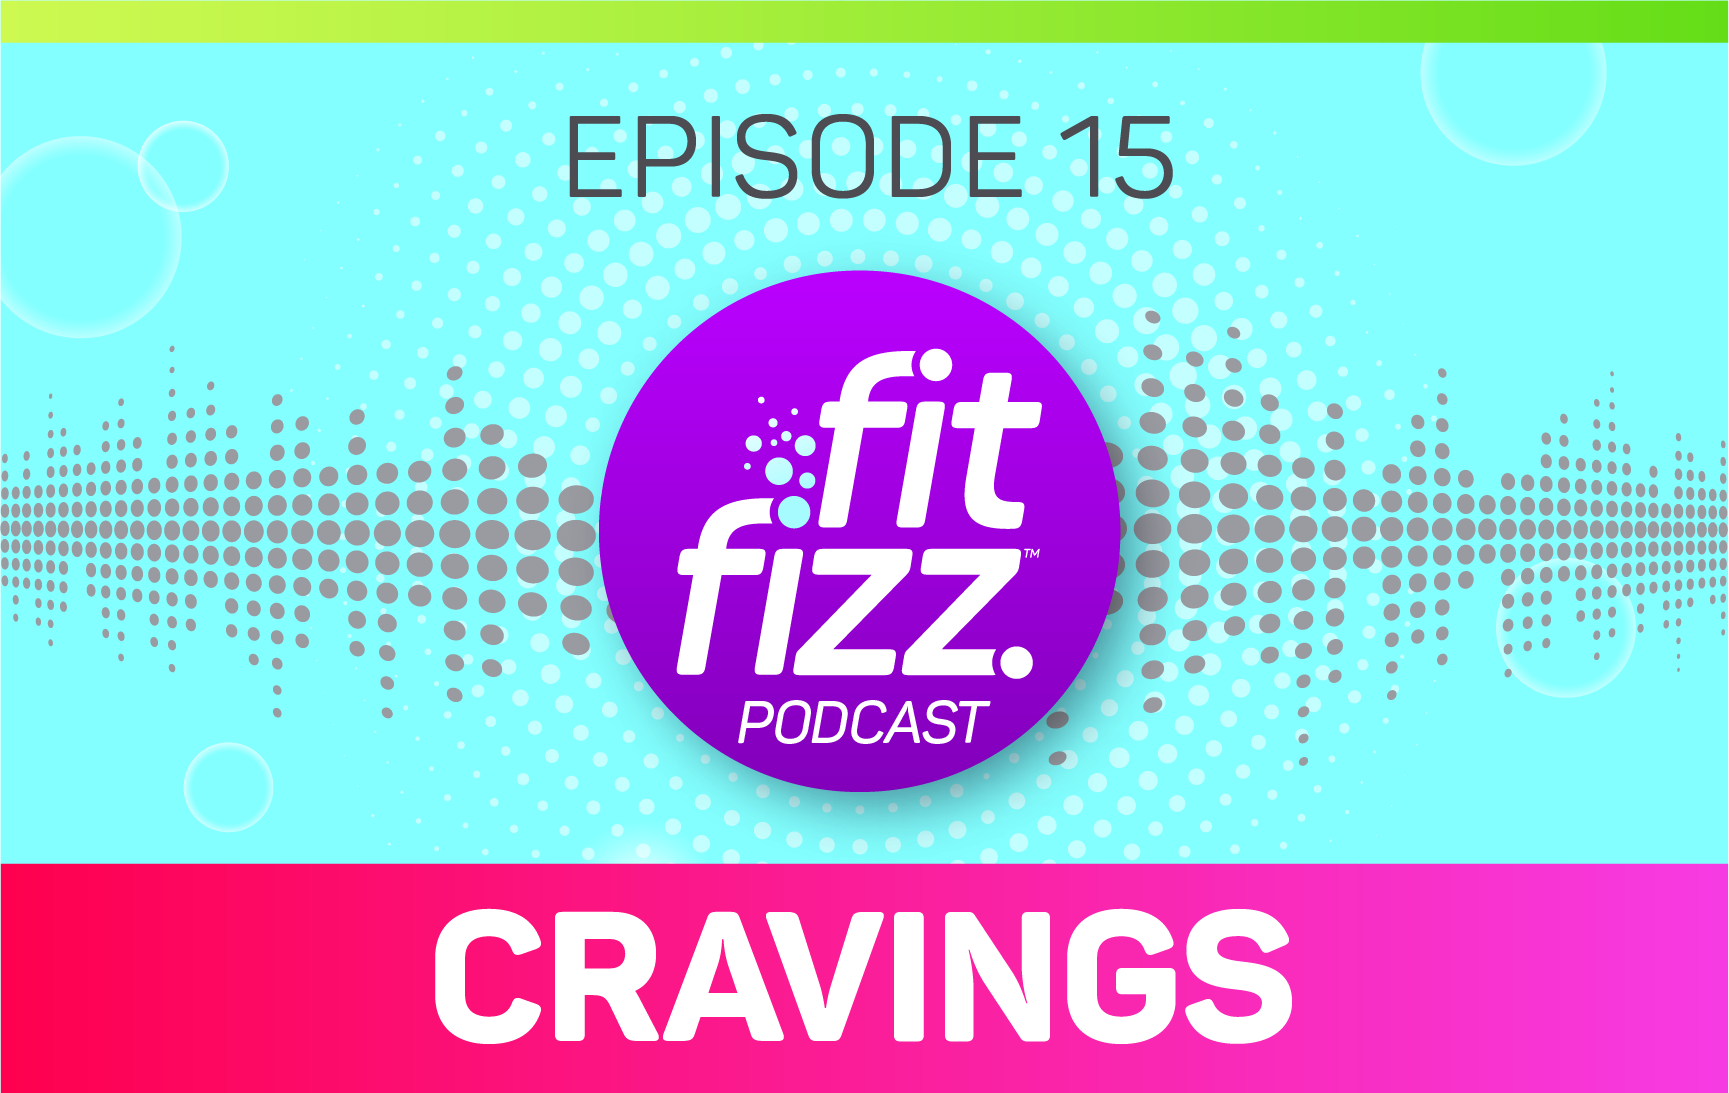 FitFizz Podcast Episode 15: Cravings